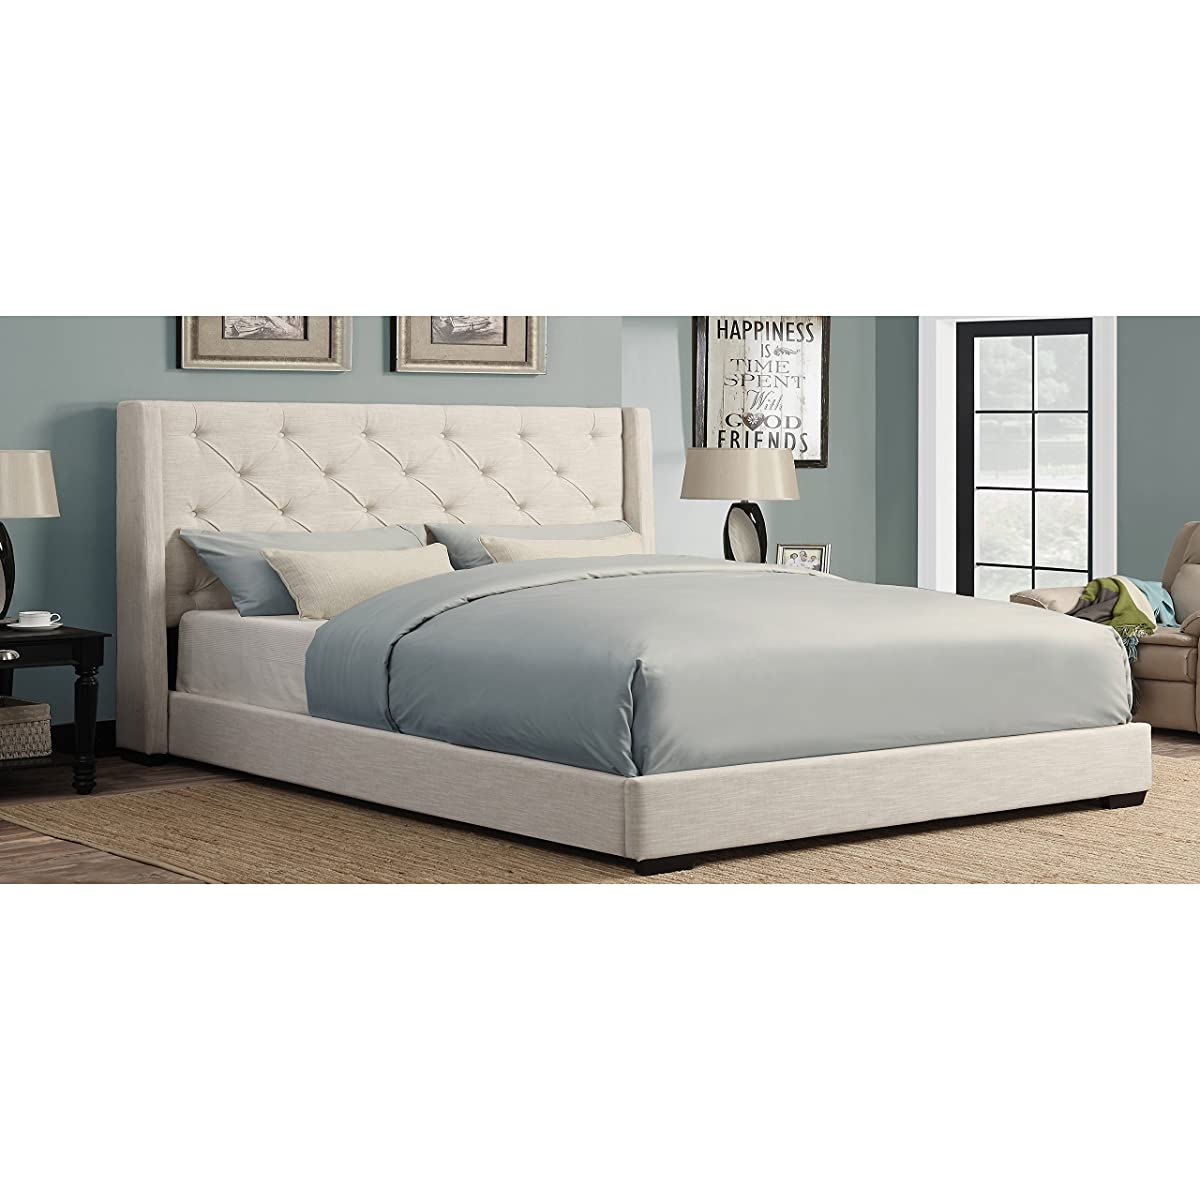 Sofaweb.com Cream Wingback Button Tufted King Size Upholstered Bed